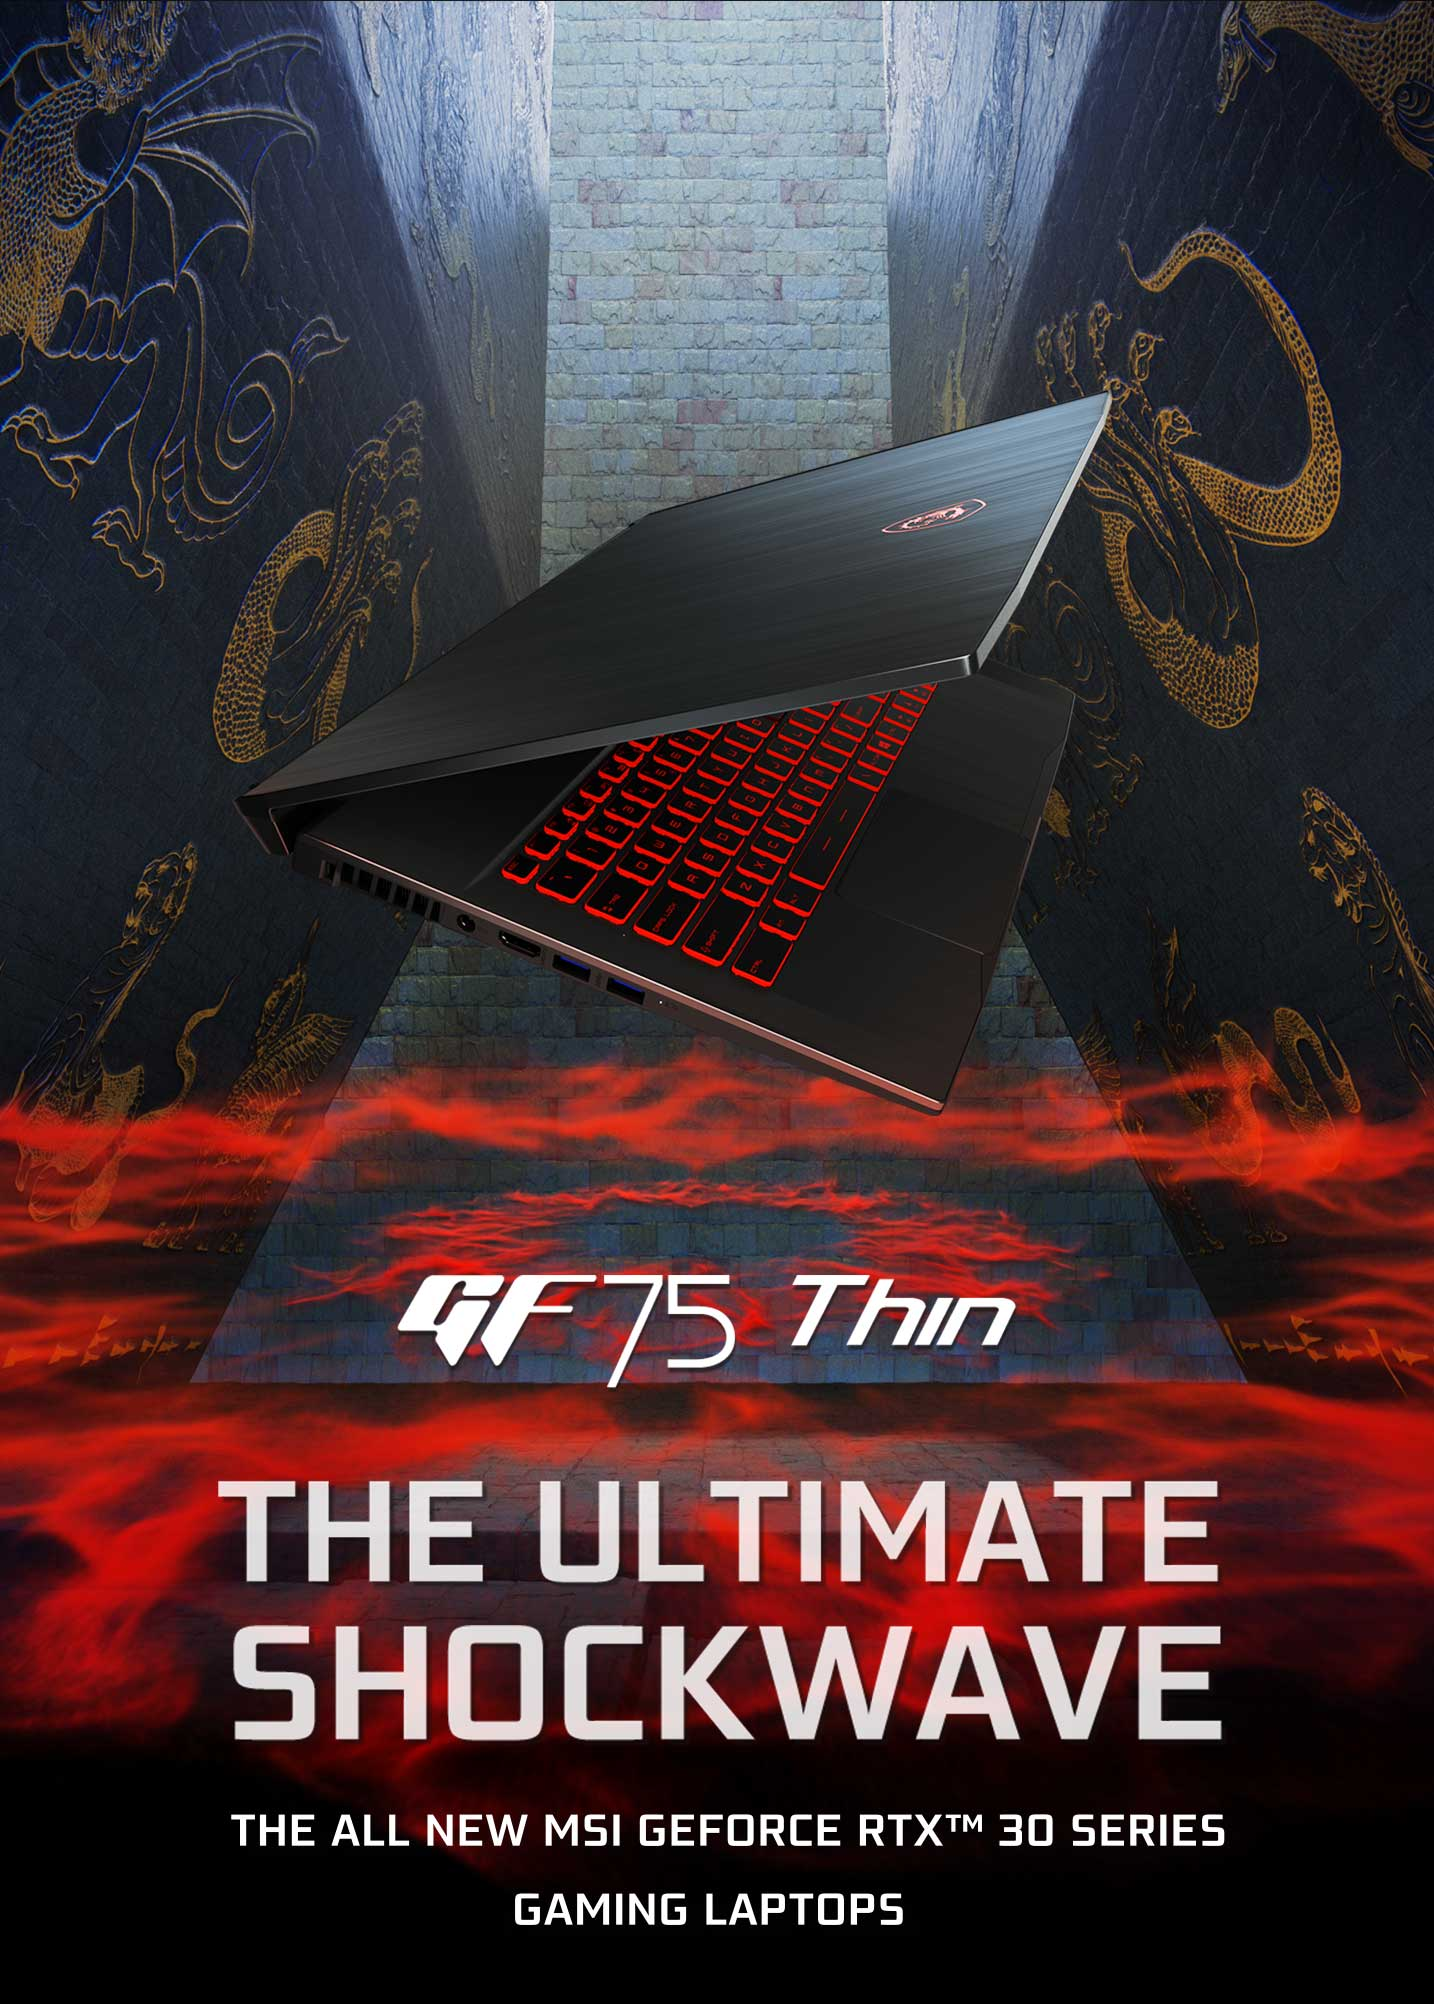 GF75 Thin - The ultimate shockwave